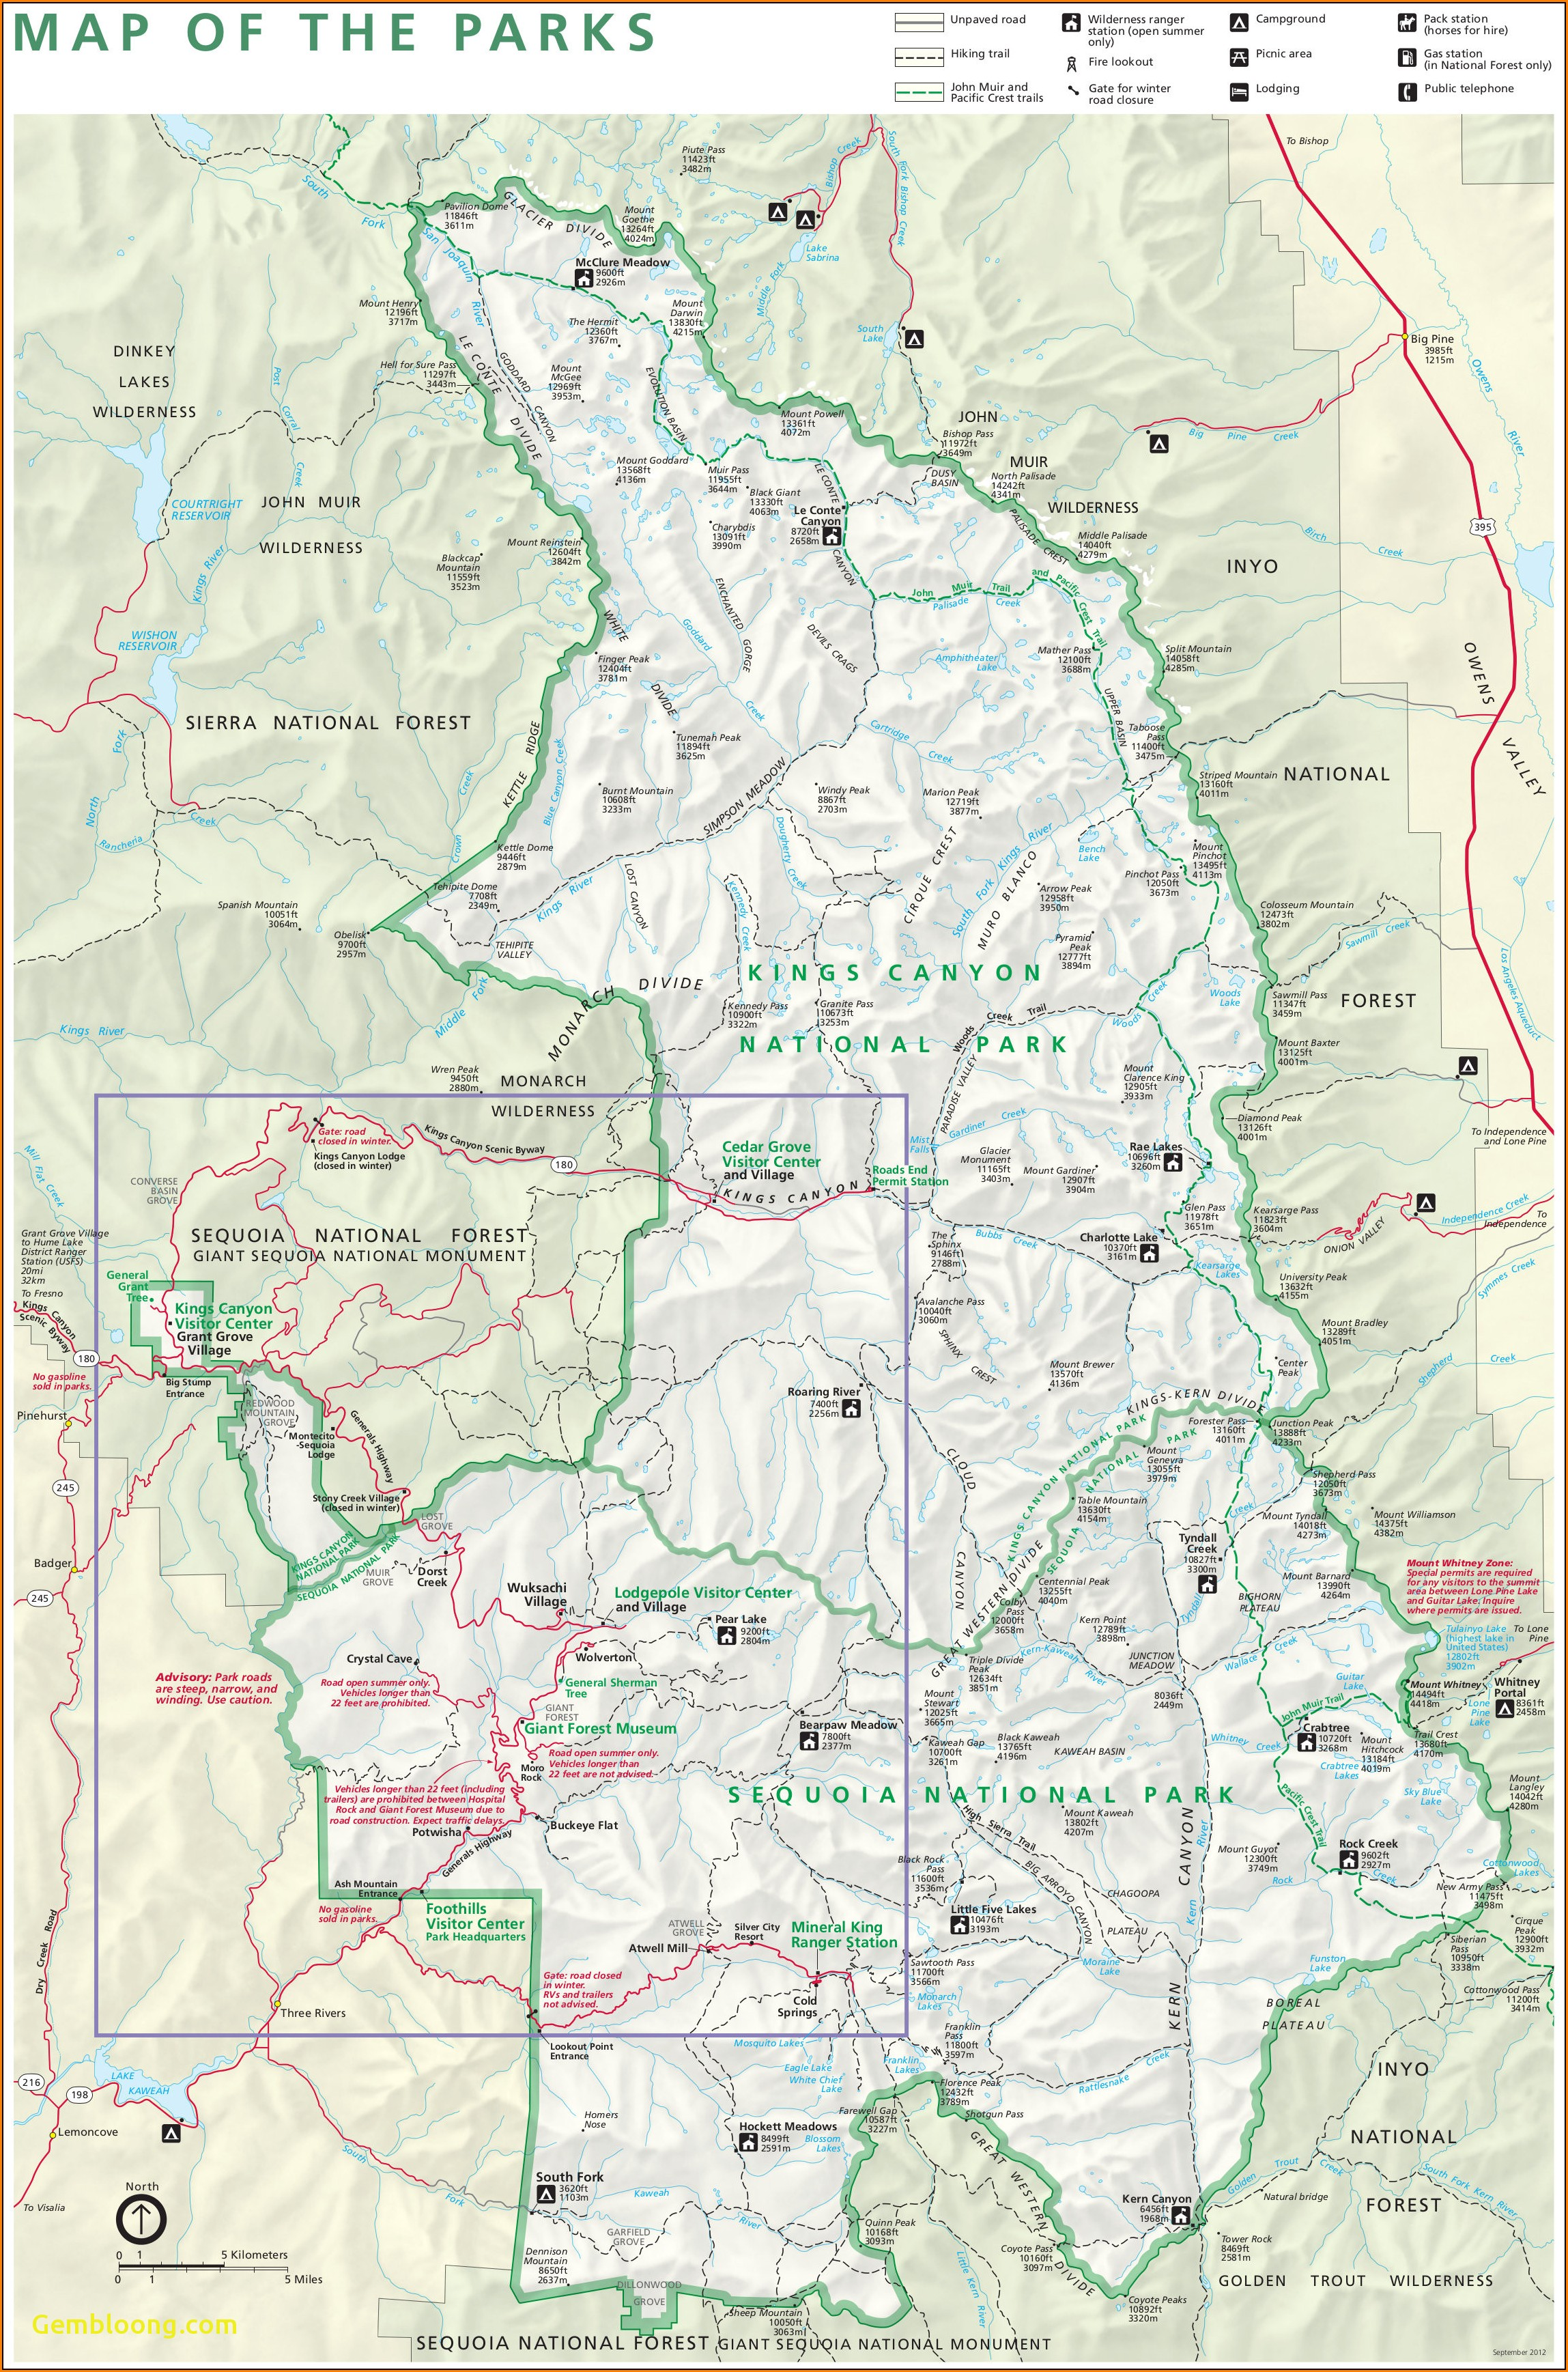 Sequoia Kings Canyon National Park Map